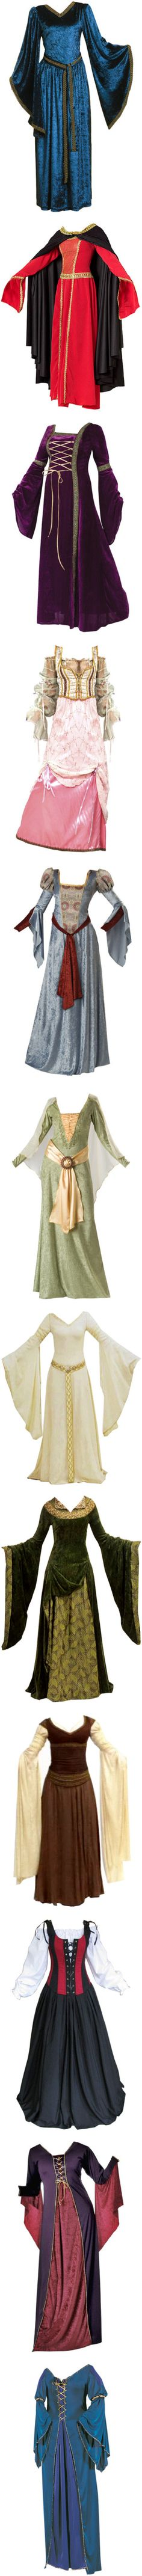 """""""Medival Gowns II"""" by savagedamsel ❤ liked on Polyvore"""